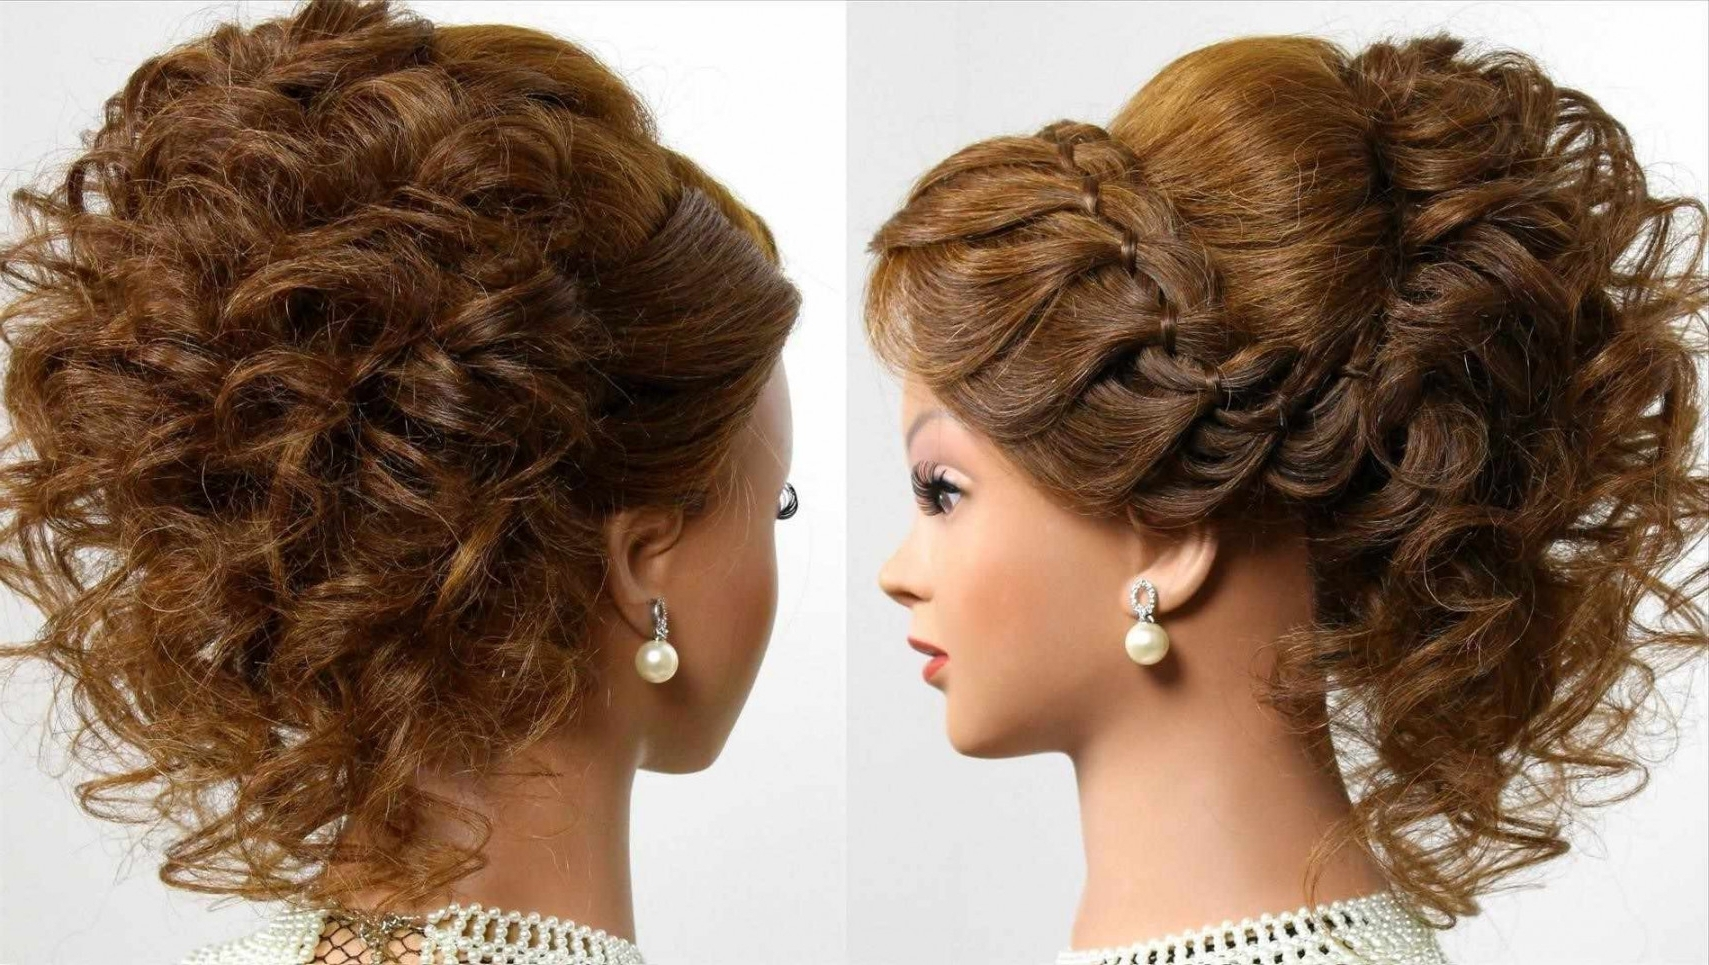 Bridal Updo Hairstyle For Long Medium Hair Soft Curled Or Wedding With Regard To Updo Hairstyles With Bangs For Medium Length Hair (View 9 of 15)